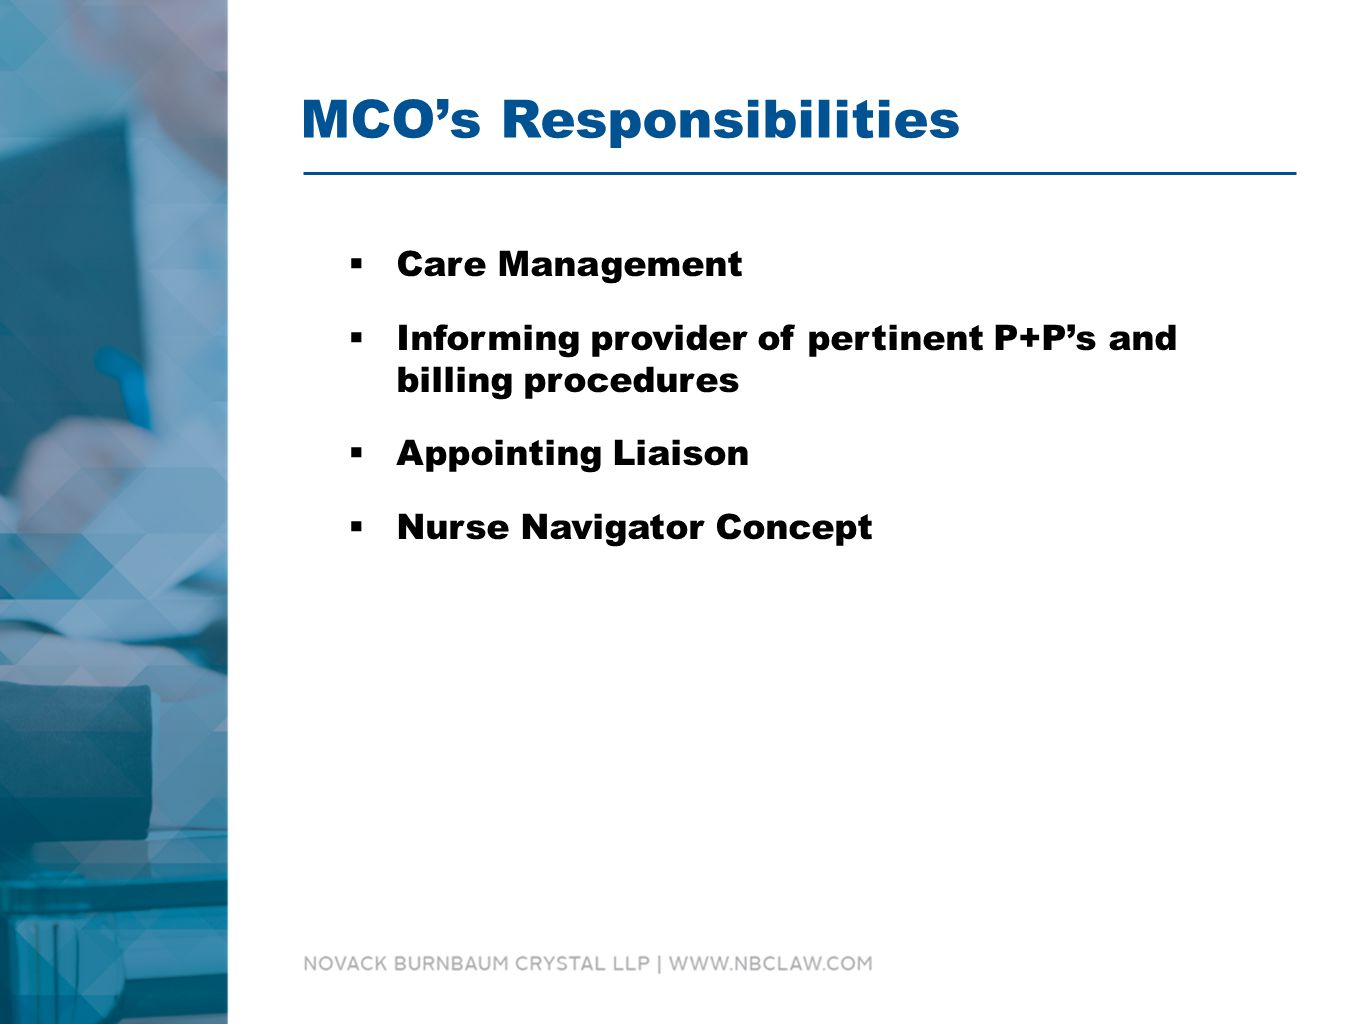 MCO's Responsibilities  Care Management  Informing provider of pertinent P+P's and billing procedures  Appointing Liaison  Nurse Navigator Concept